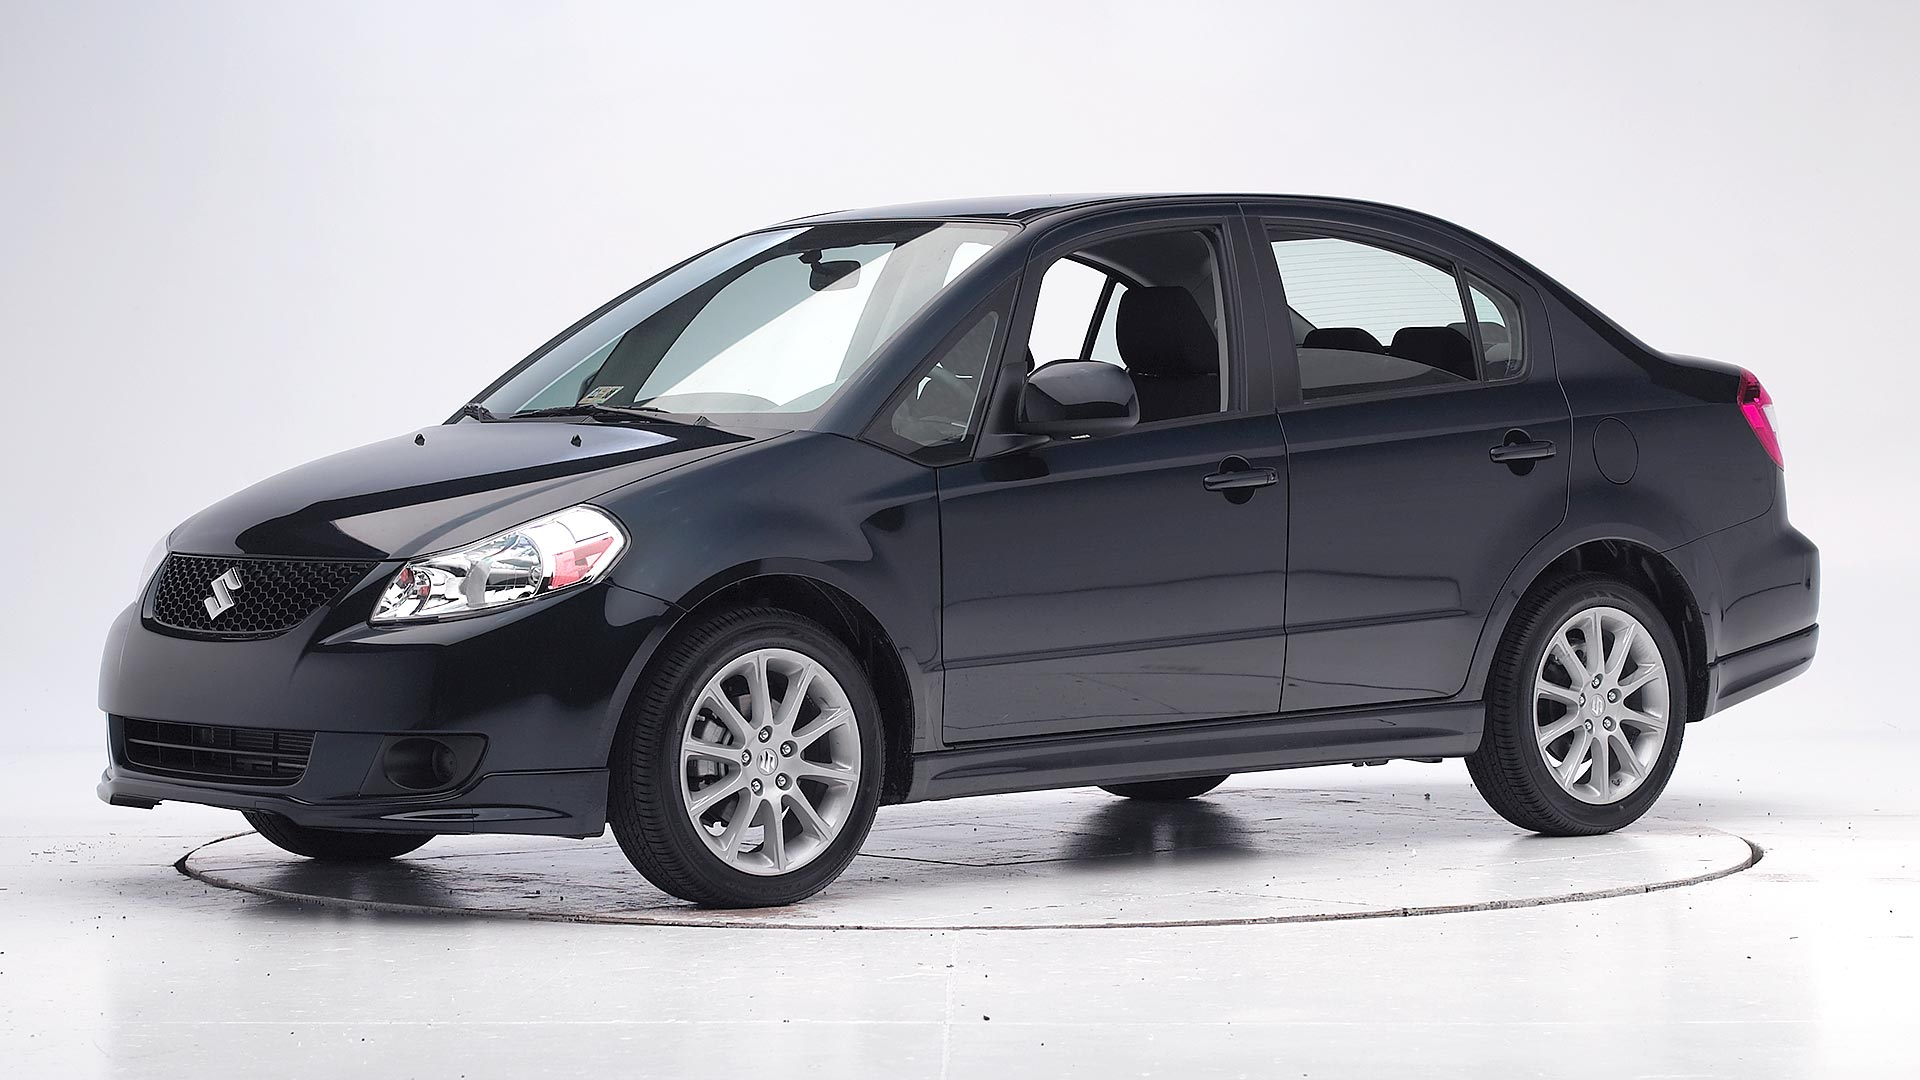 2008 Suzuki SX4 4-door sedan